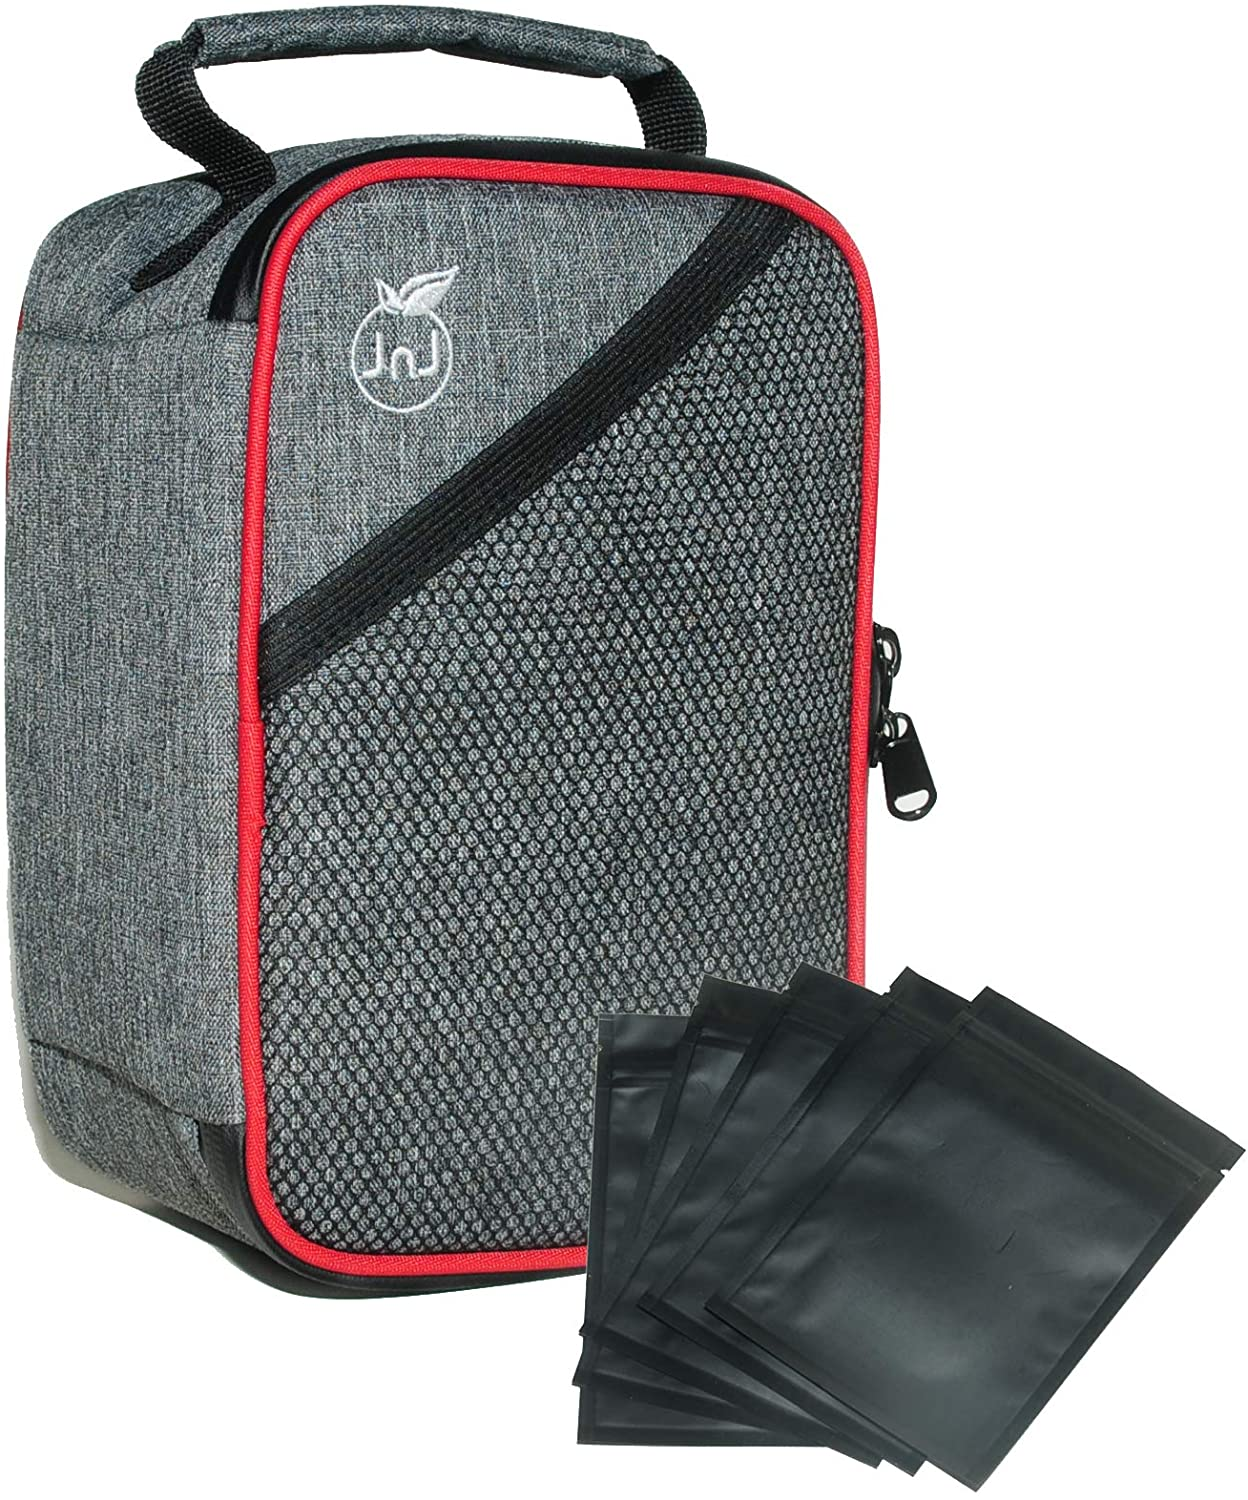 Smell Proof Bag with Combination Lock Built-in and Extra Storage. Odor Resistant and Waterproof Container for Herbs and Smelly Products + 5 Resealable 4x6 Mylar Bags - by JNJ Solutions 2020 New